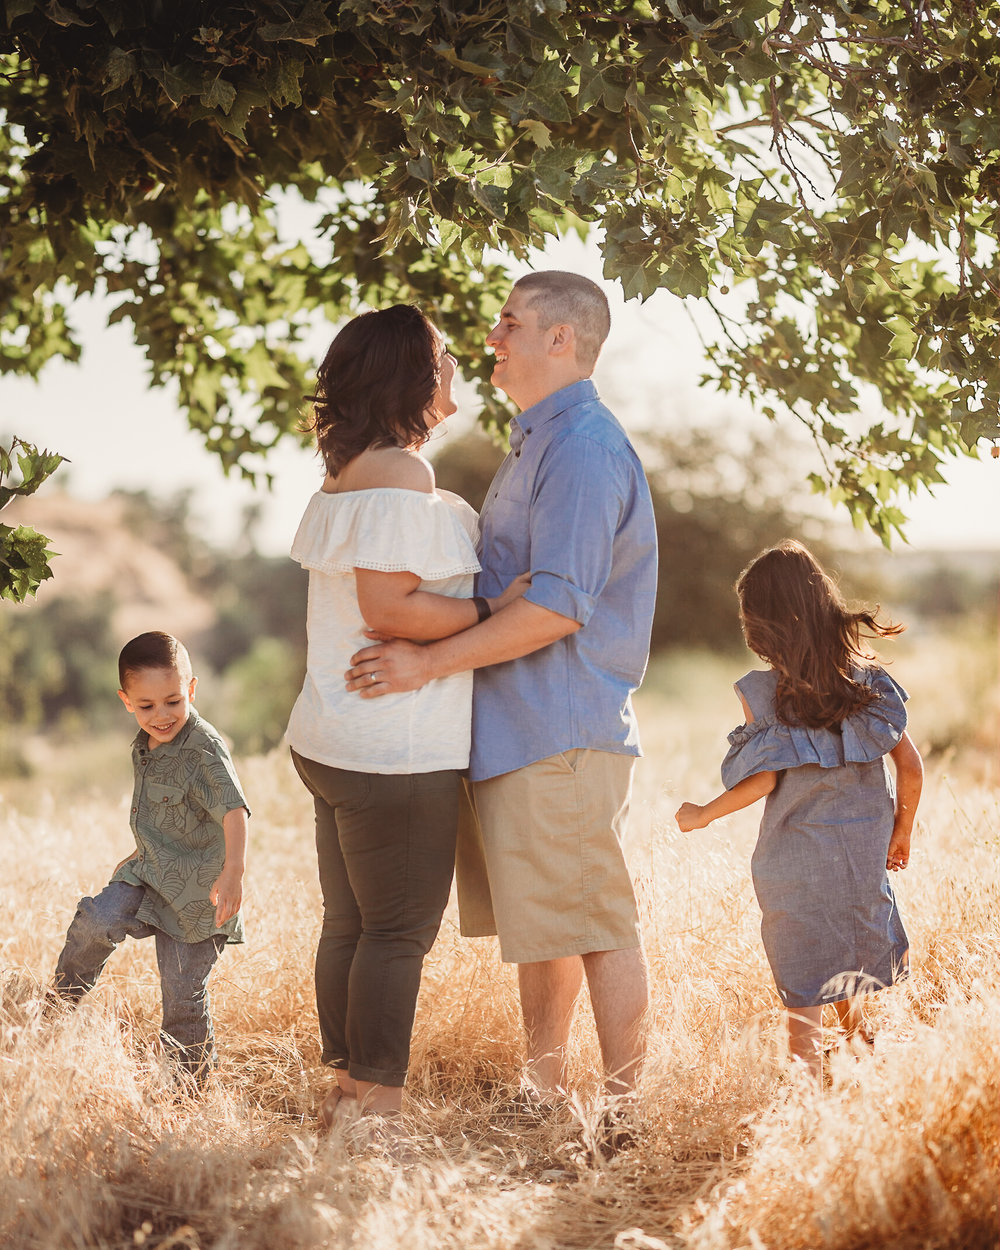 My ver first Instagram post!  So very exciting!  I love this family so much.  I was a JOY to photograph them.  And look at this light!  I love the golden glows